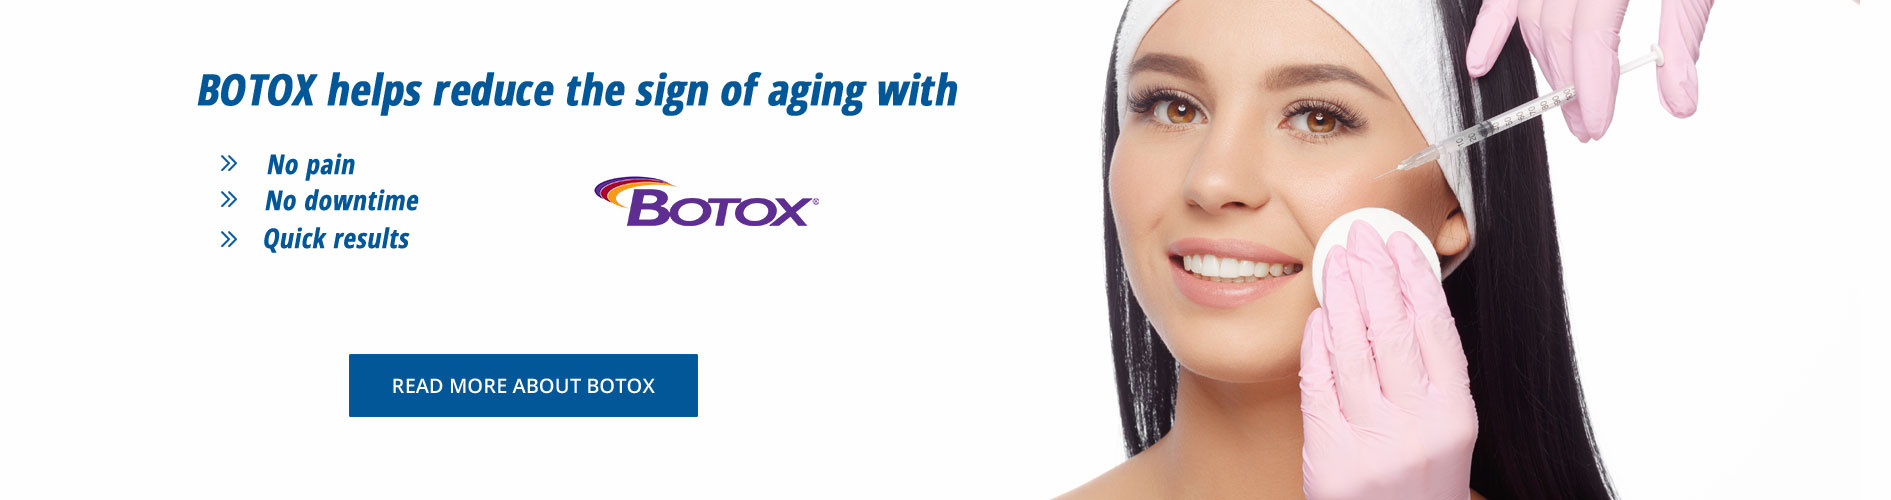 Botox Cosmetic At Beer Dermatology West Palm Beach